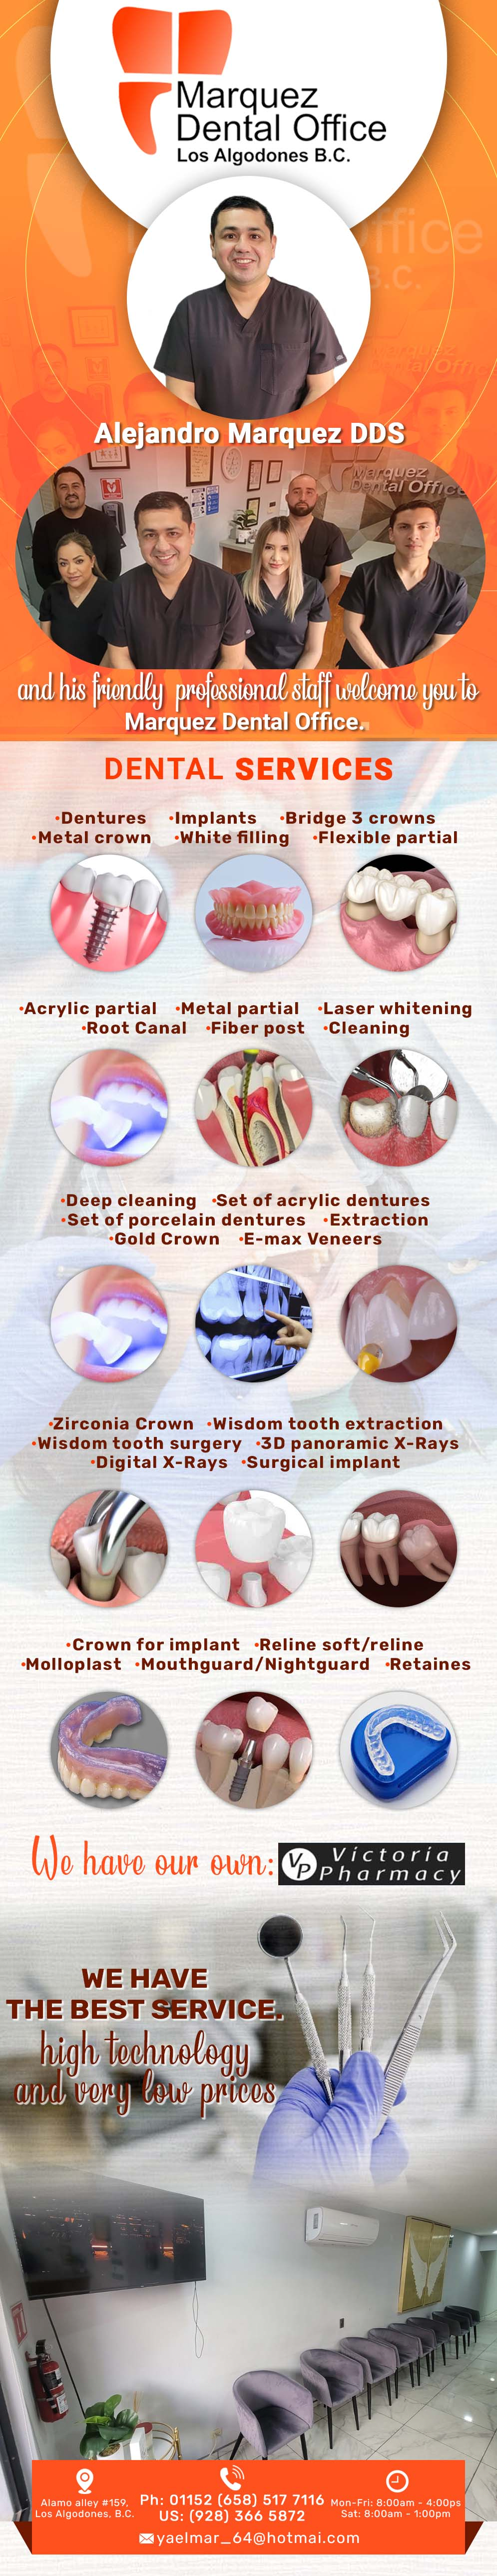 Marquez Dental Office - DDS Alejandro Márquez in Algodones  in Algodones  COMMITED TOTAL QUALITY IN DENTAL SERVICE     Bridges